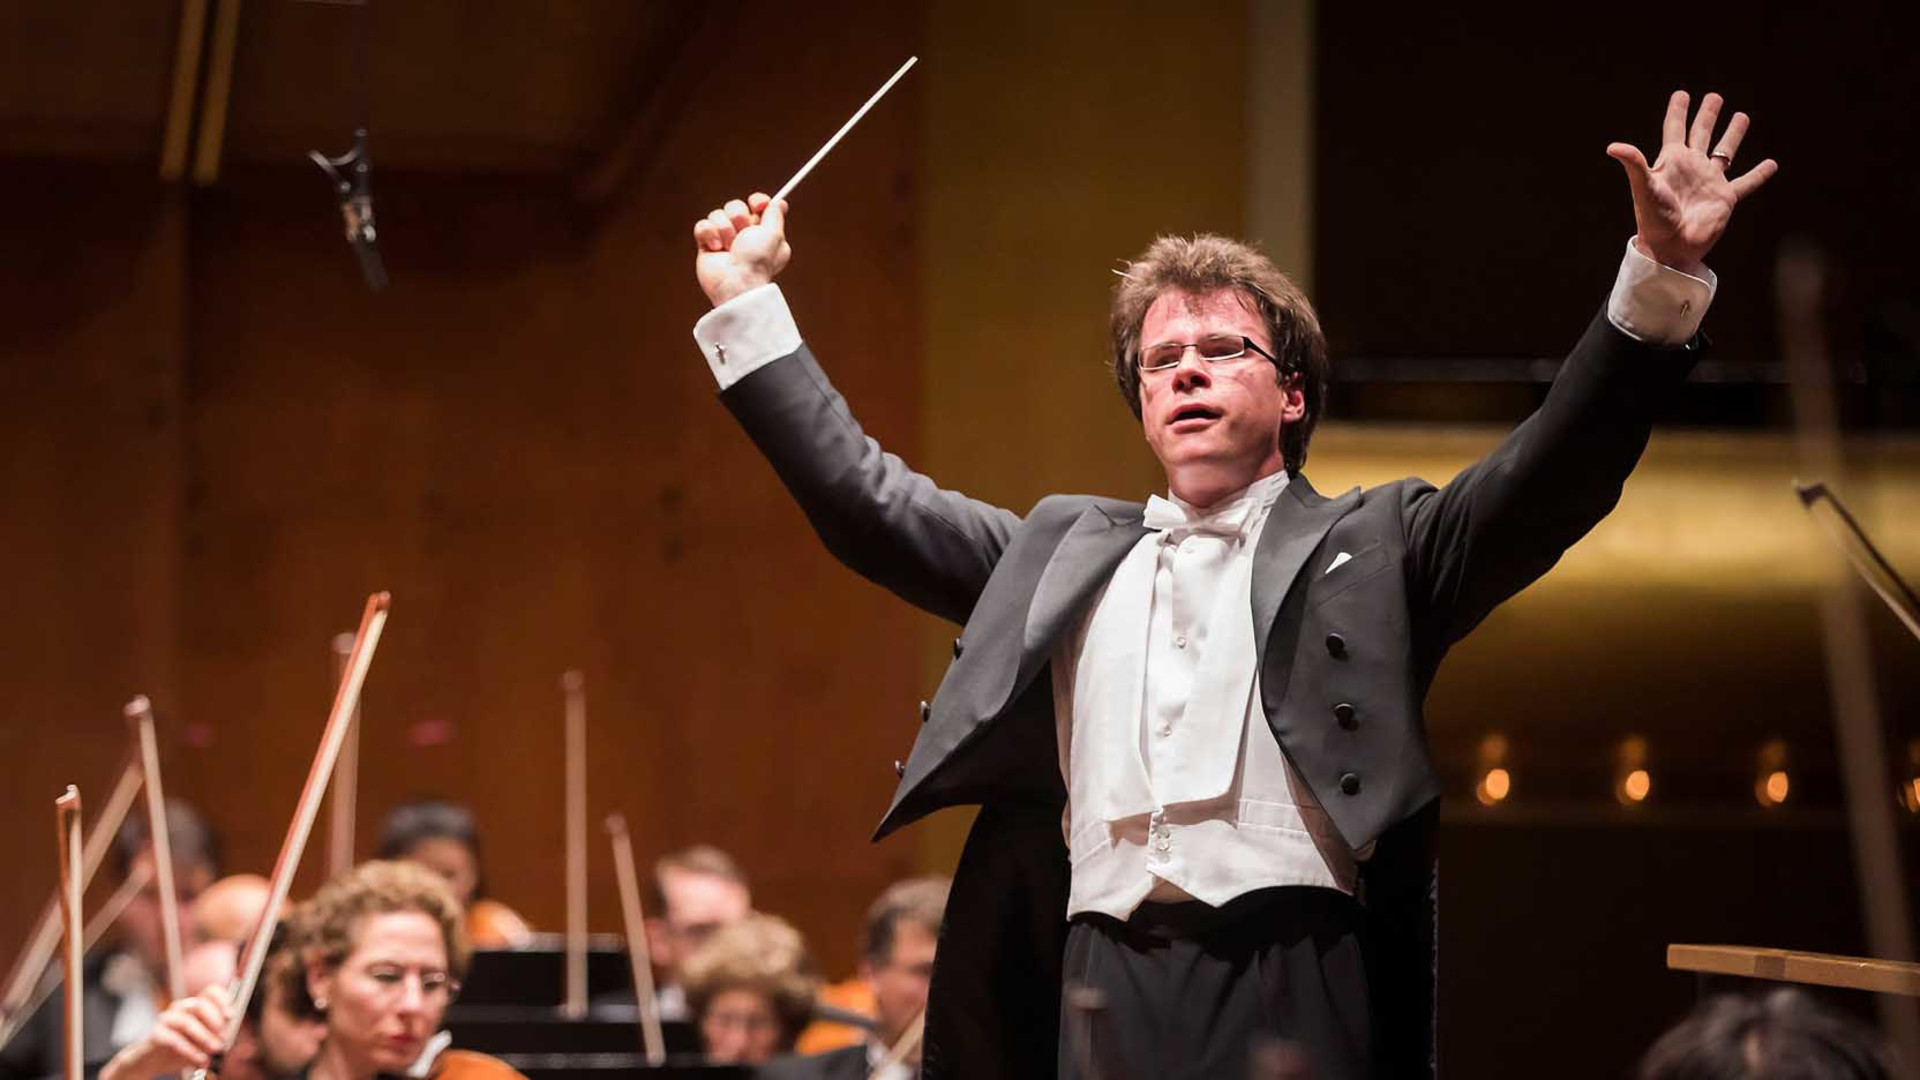 For Kids: Simon Trpčeski Open Rehearsal with the Philharmonic, at Lincoln Center